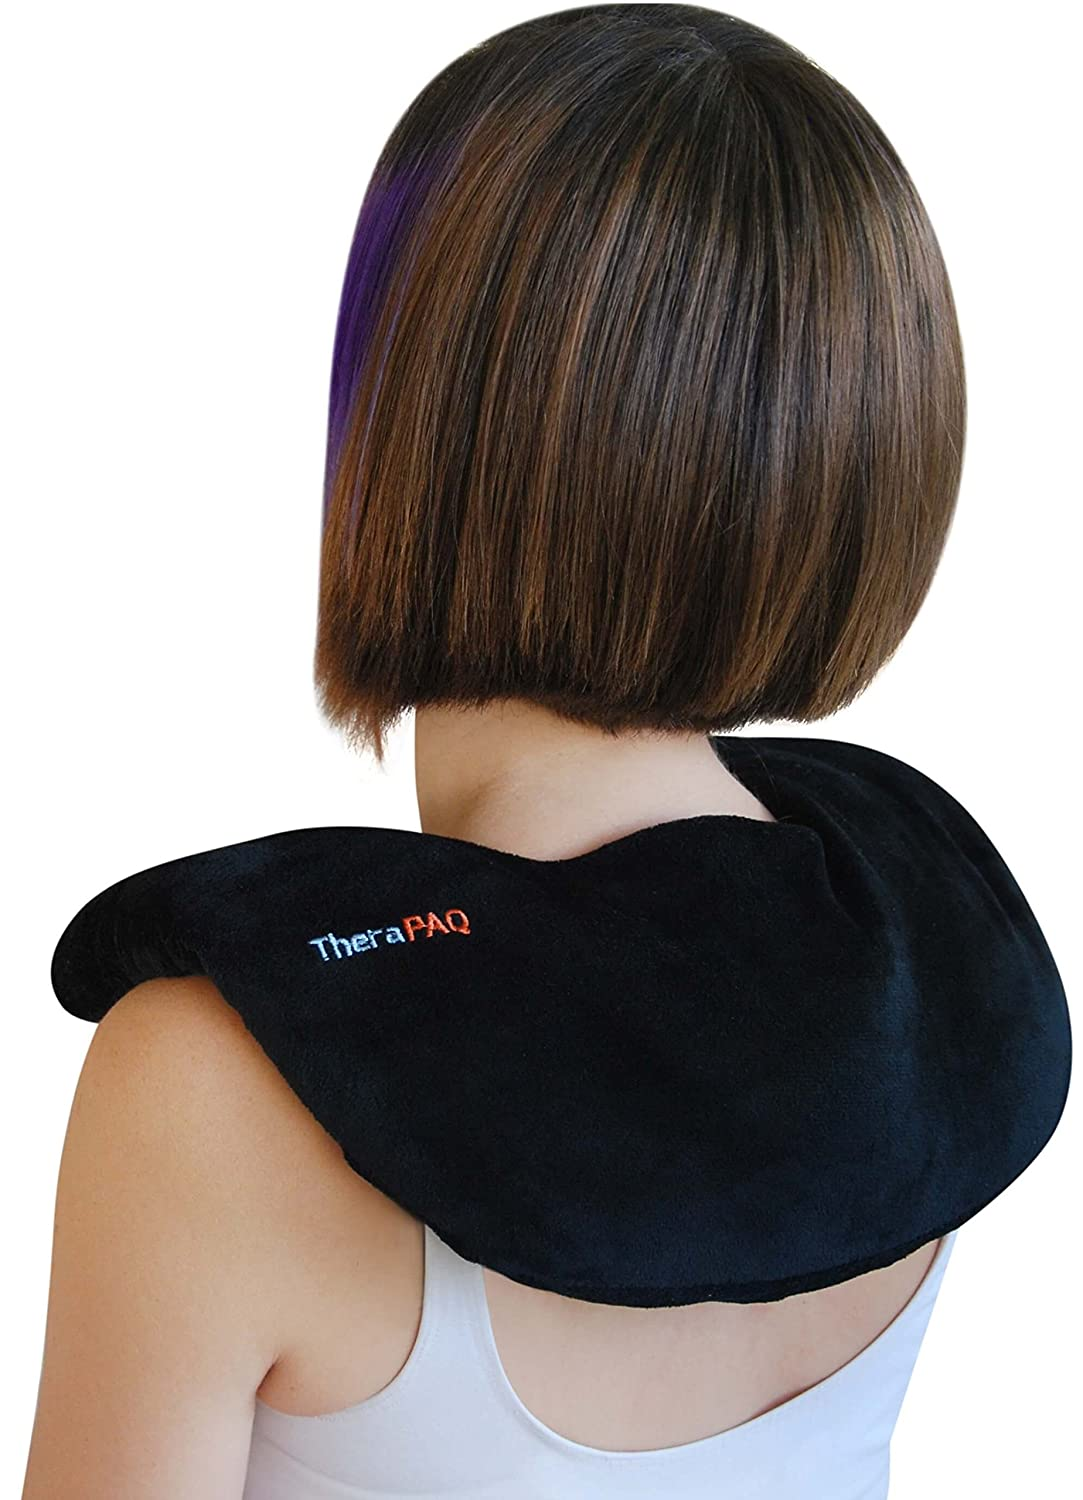 Neck Warmer Microwavable Heating Pad by TheraPAQ | Weighted Neck and Shoulder Heat Wrap - Best for Natural Moist Heat Therapy or as Cold Pack - Reusable, Microwave Heated Wrap - Non-Scented